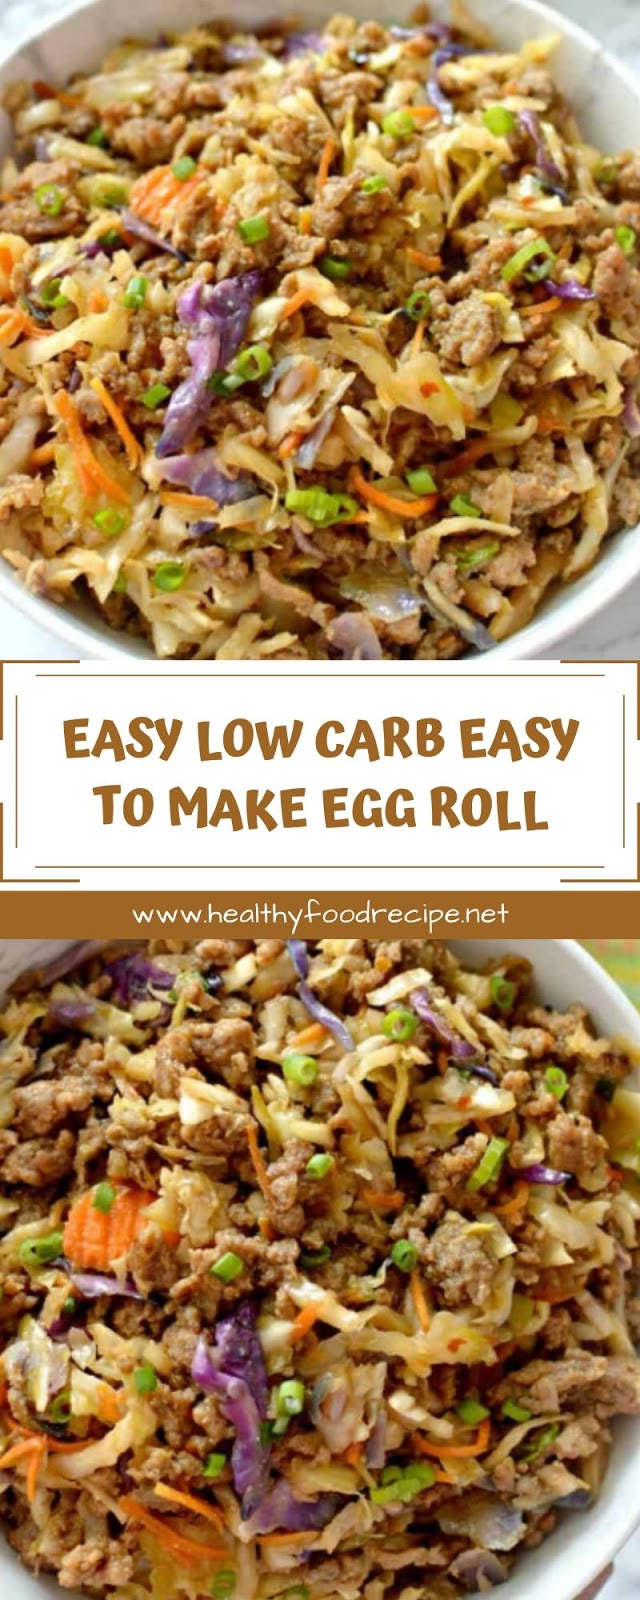 EASY LOW CARB EASY TO MAKE EGG ROLL